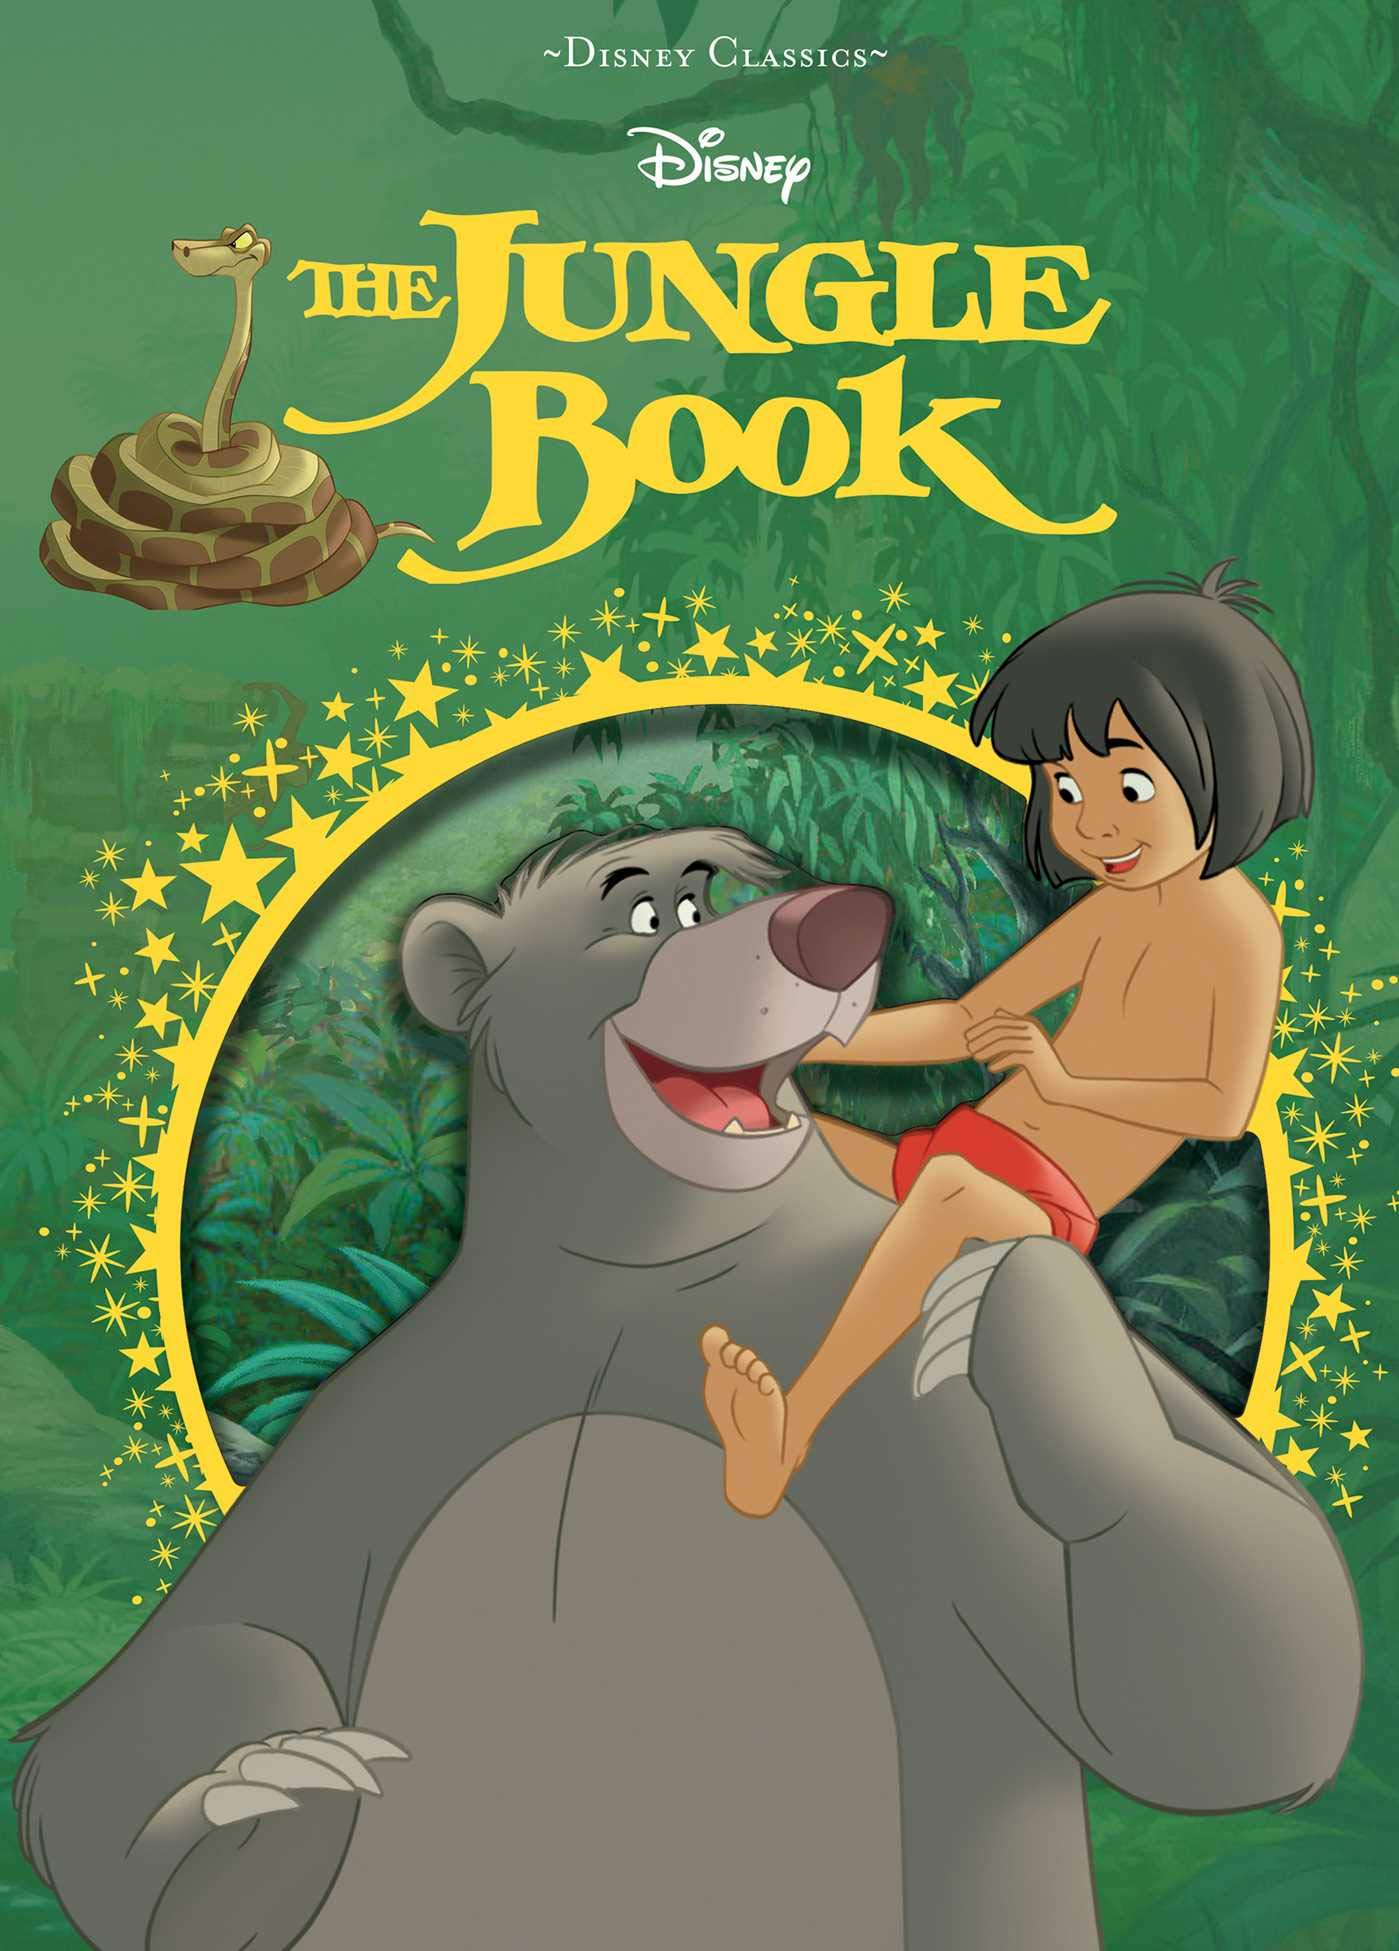 The Jungle Book:King of the Monsters (2021 film)